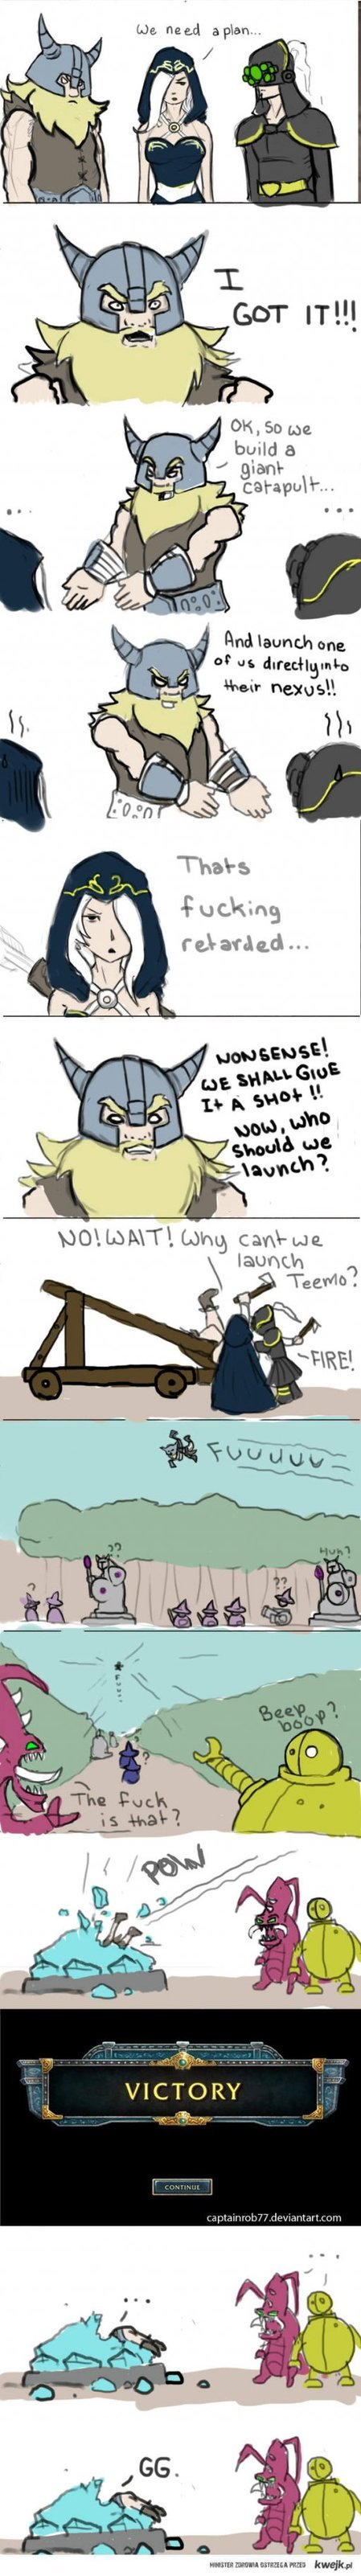 """Olaf GG. not mine. Cybug) Jit, """". Catapults are so OP... nerf them nowwww."""